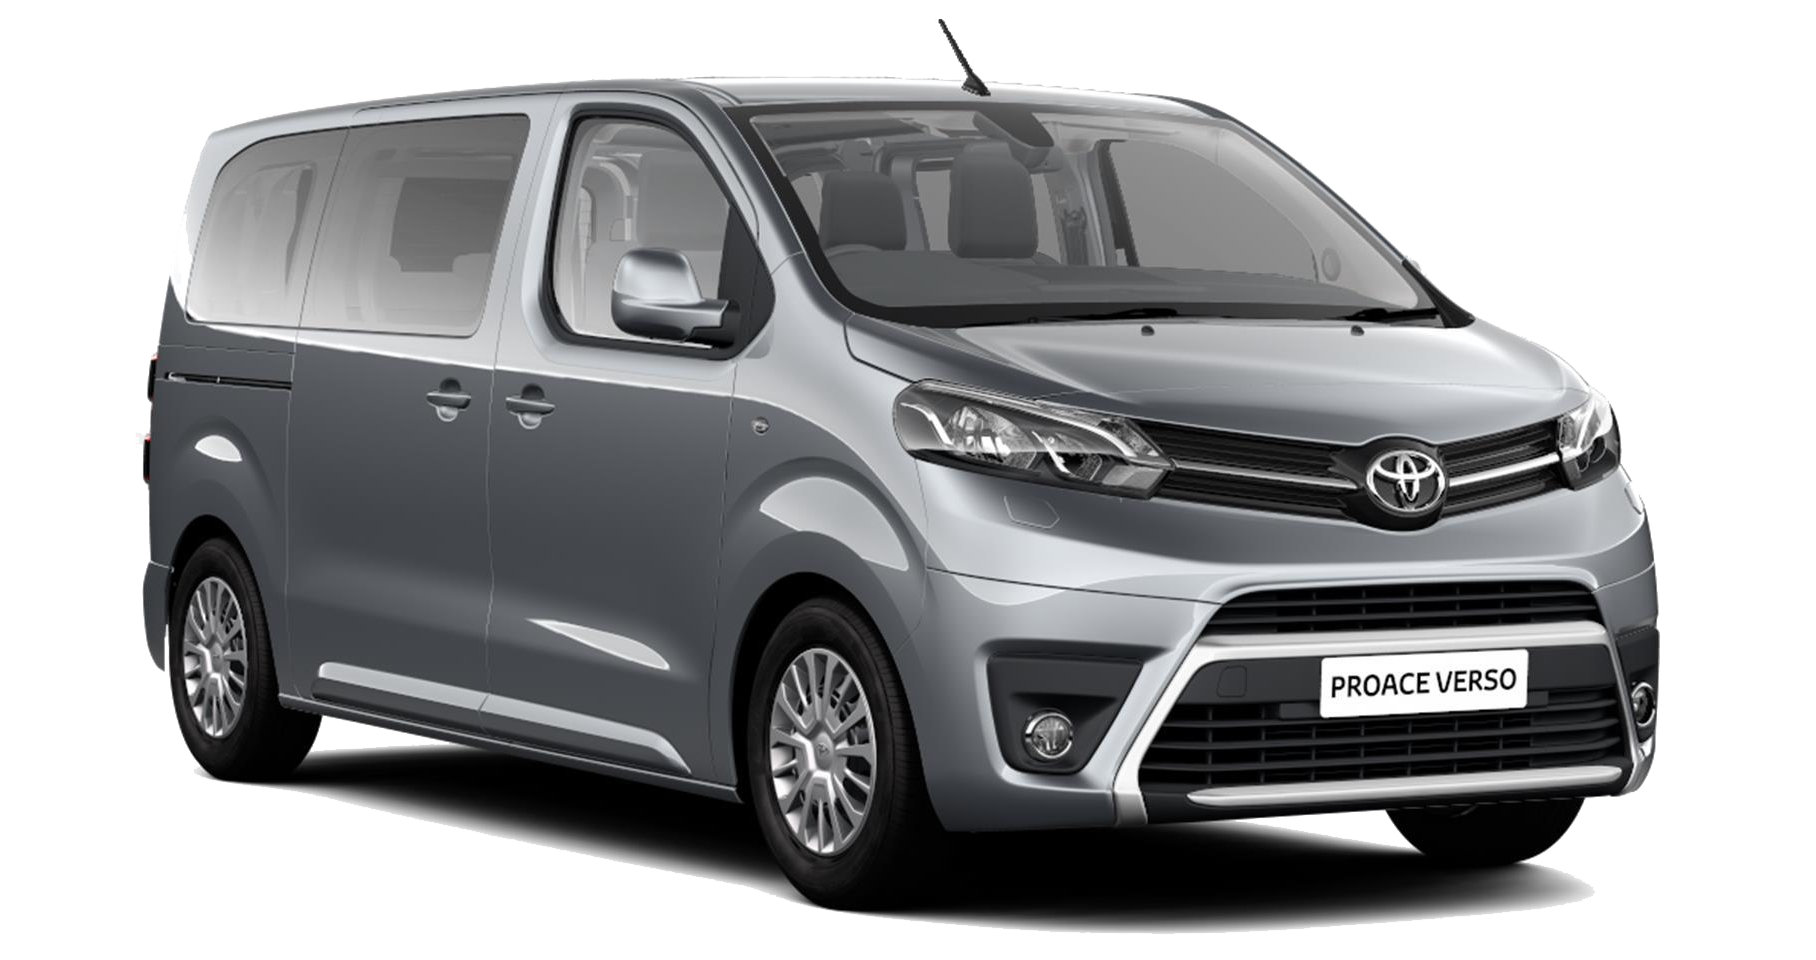 Toyota Proace Verso - Available in Silver Shadow